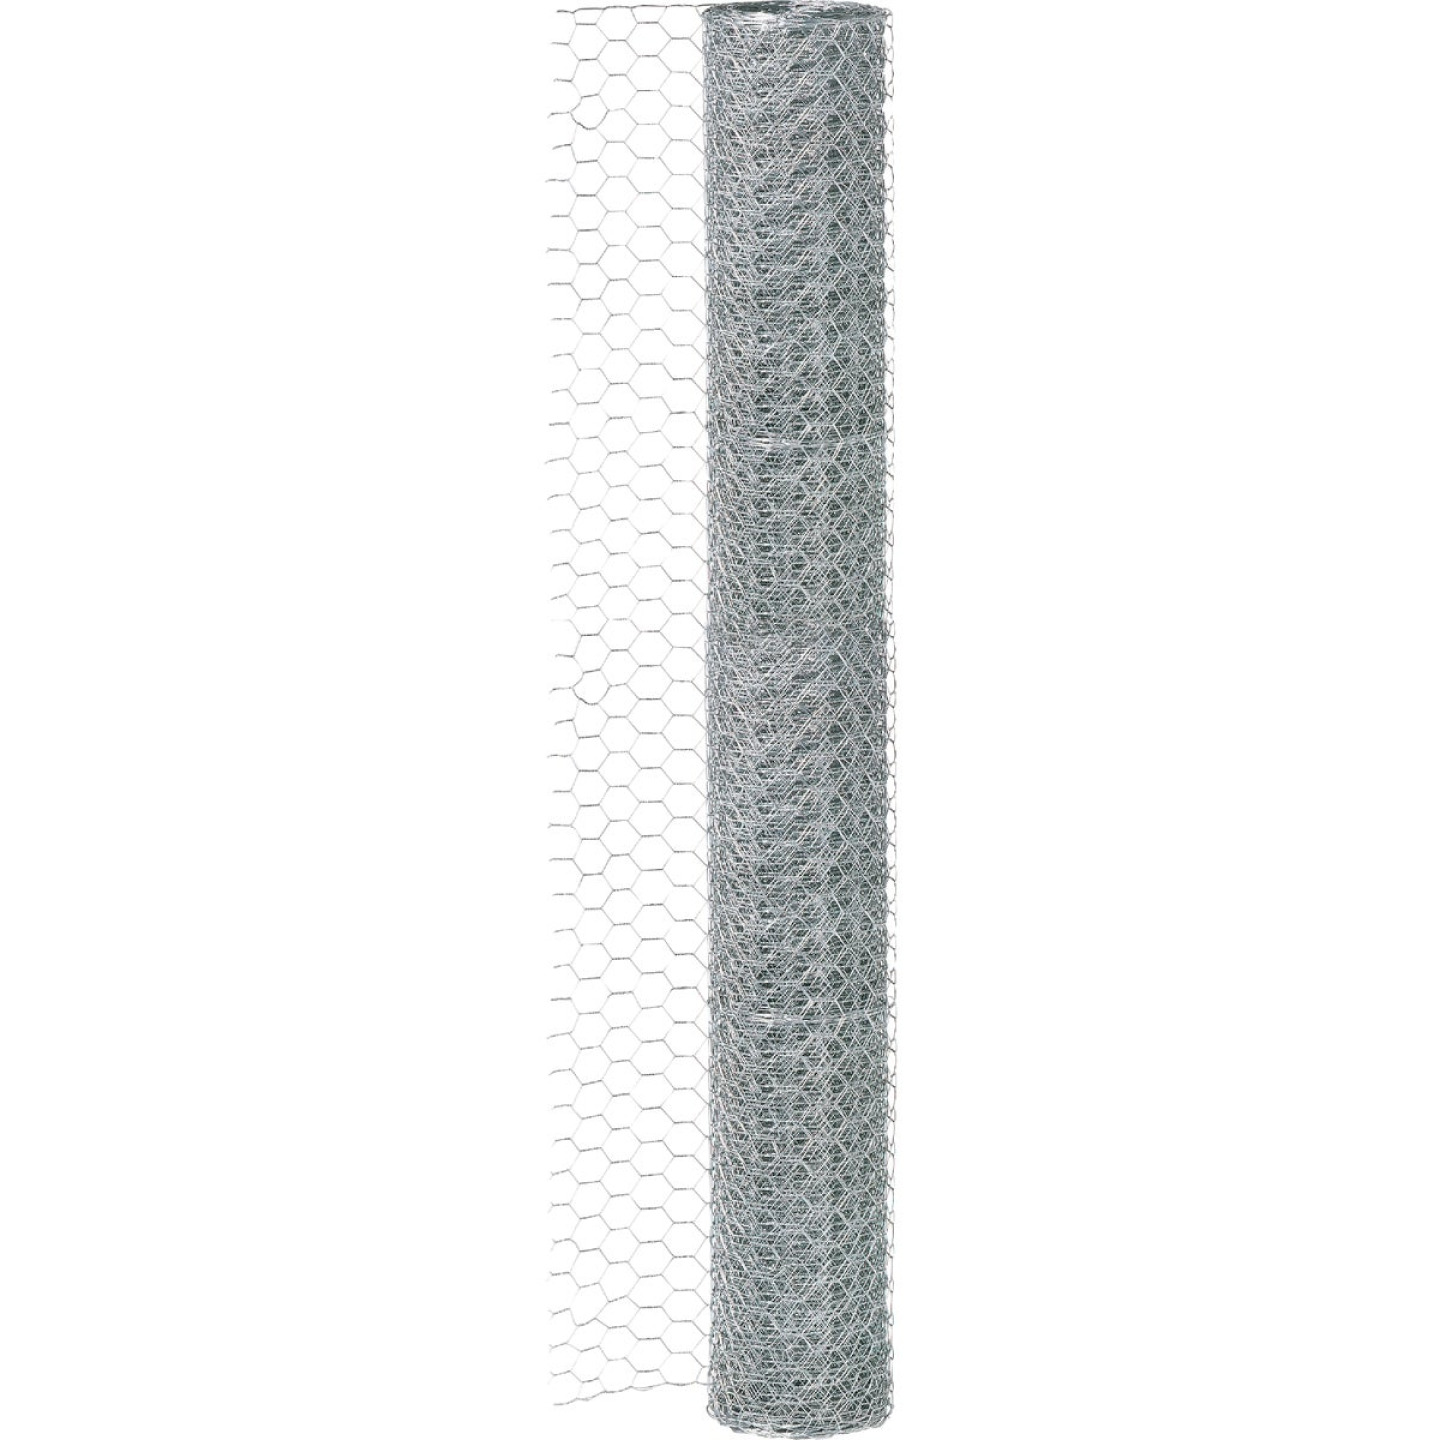 1/2 In. x 24 In. H. x 10 Ft. L. Hexagonal Wire Poultry Netting Image 3